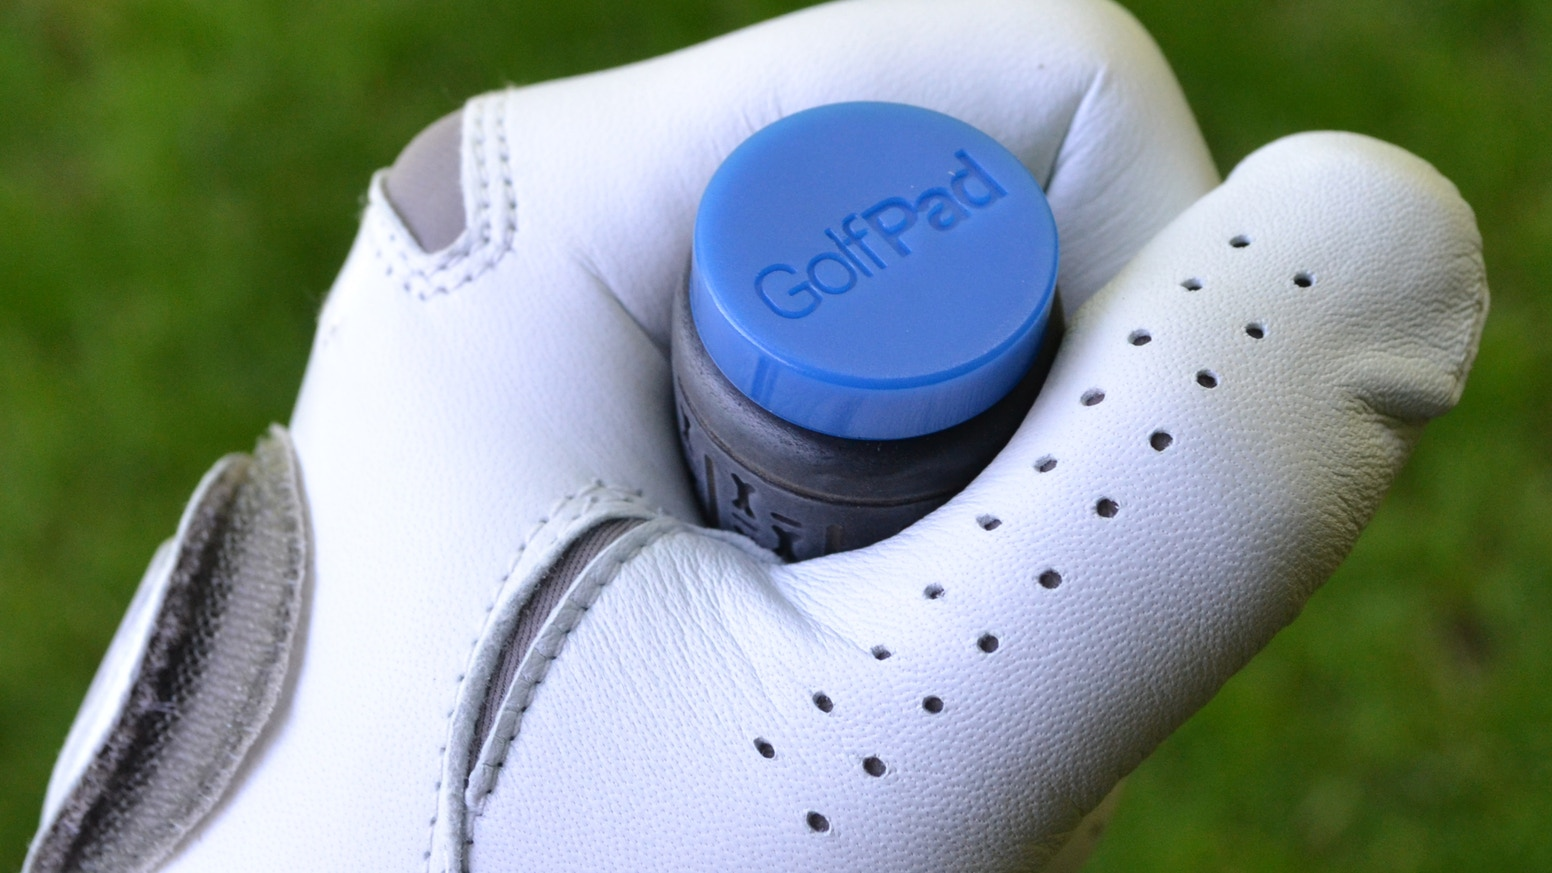 GOLF TAGS - easily track and improve your golf game by Golf